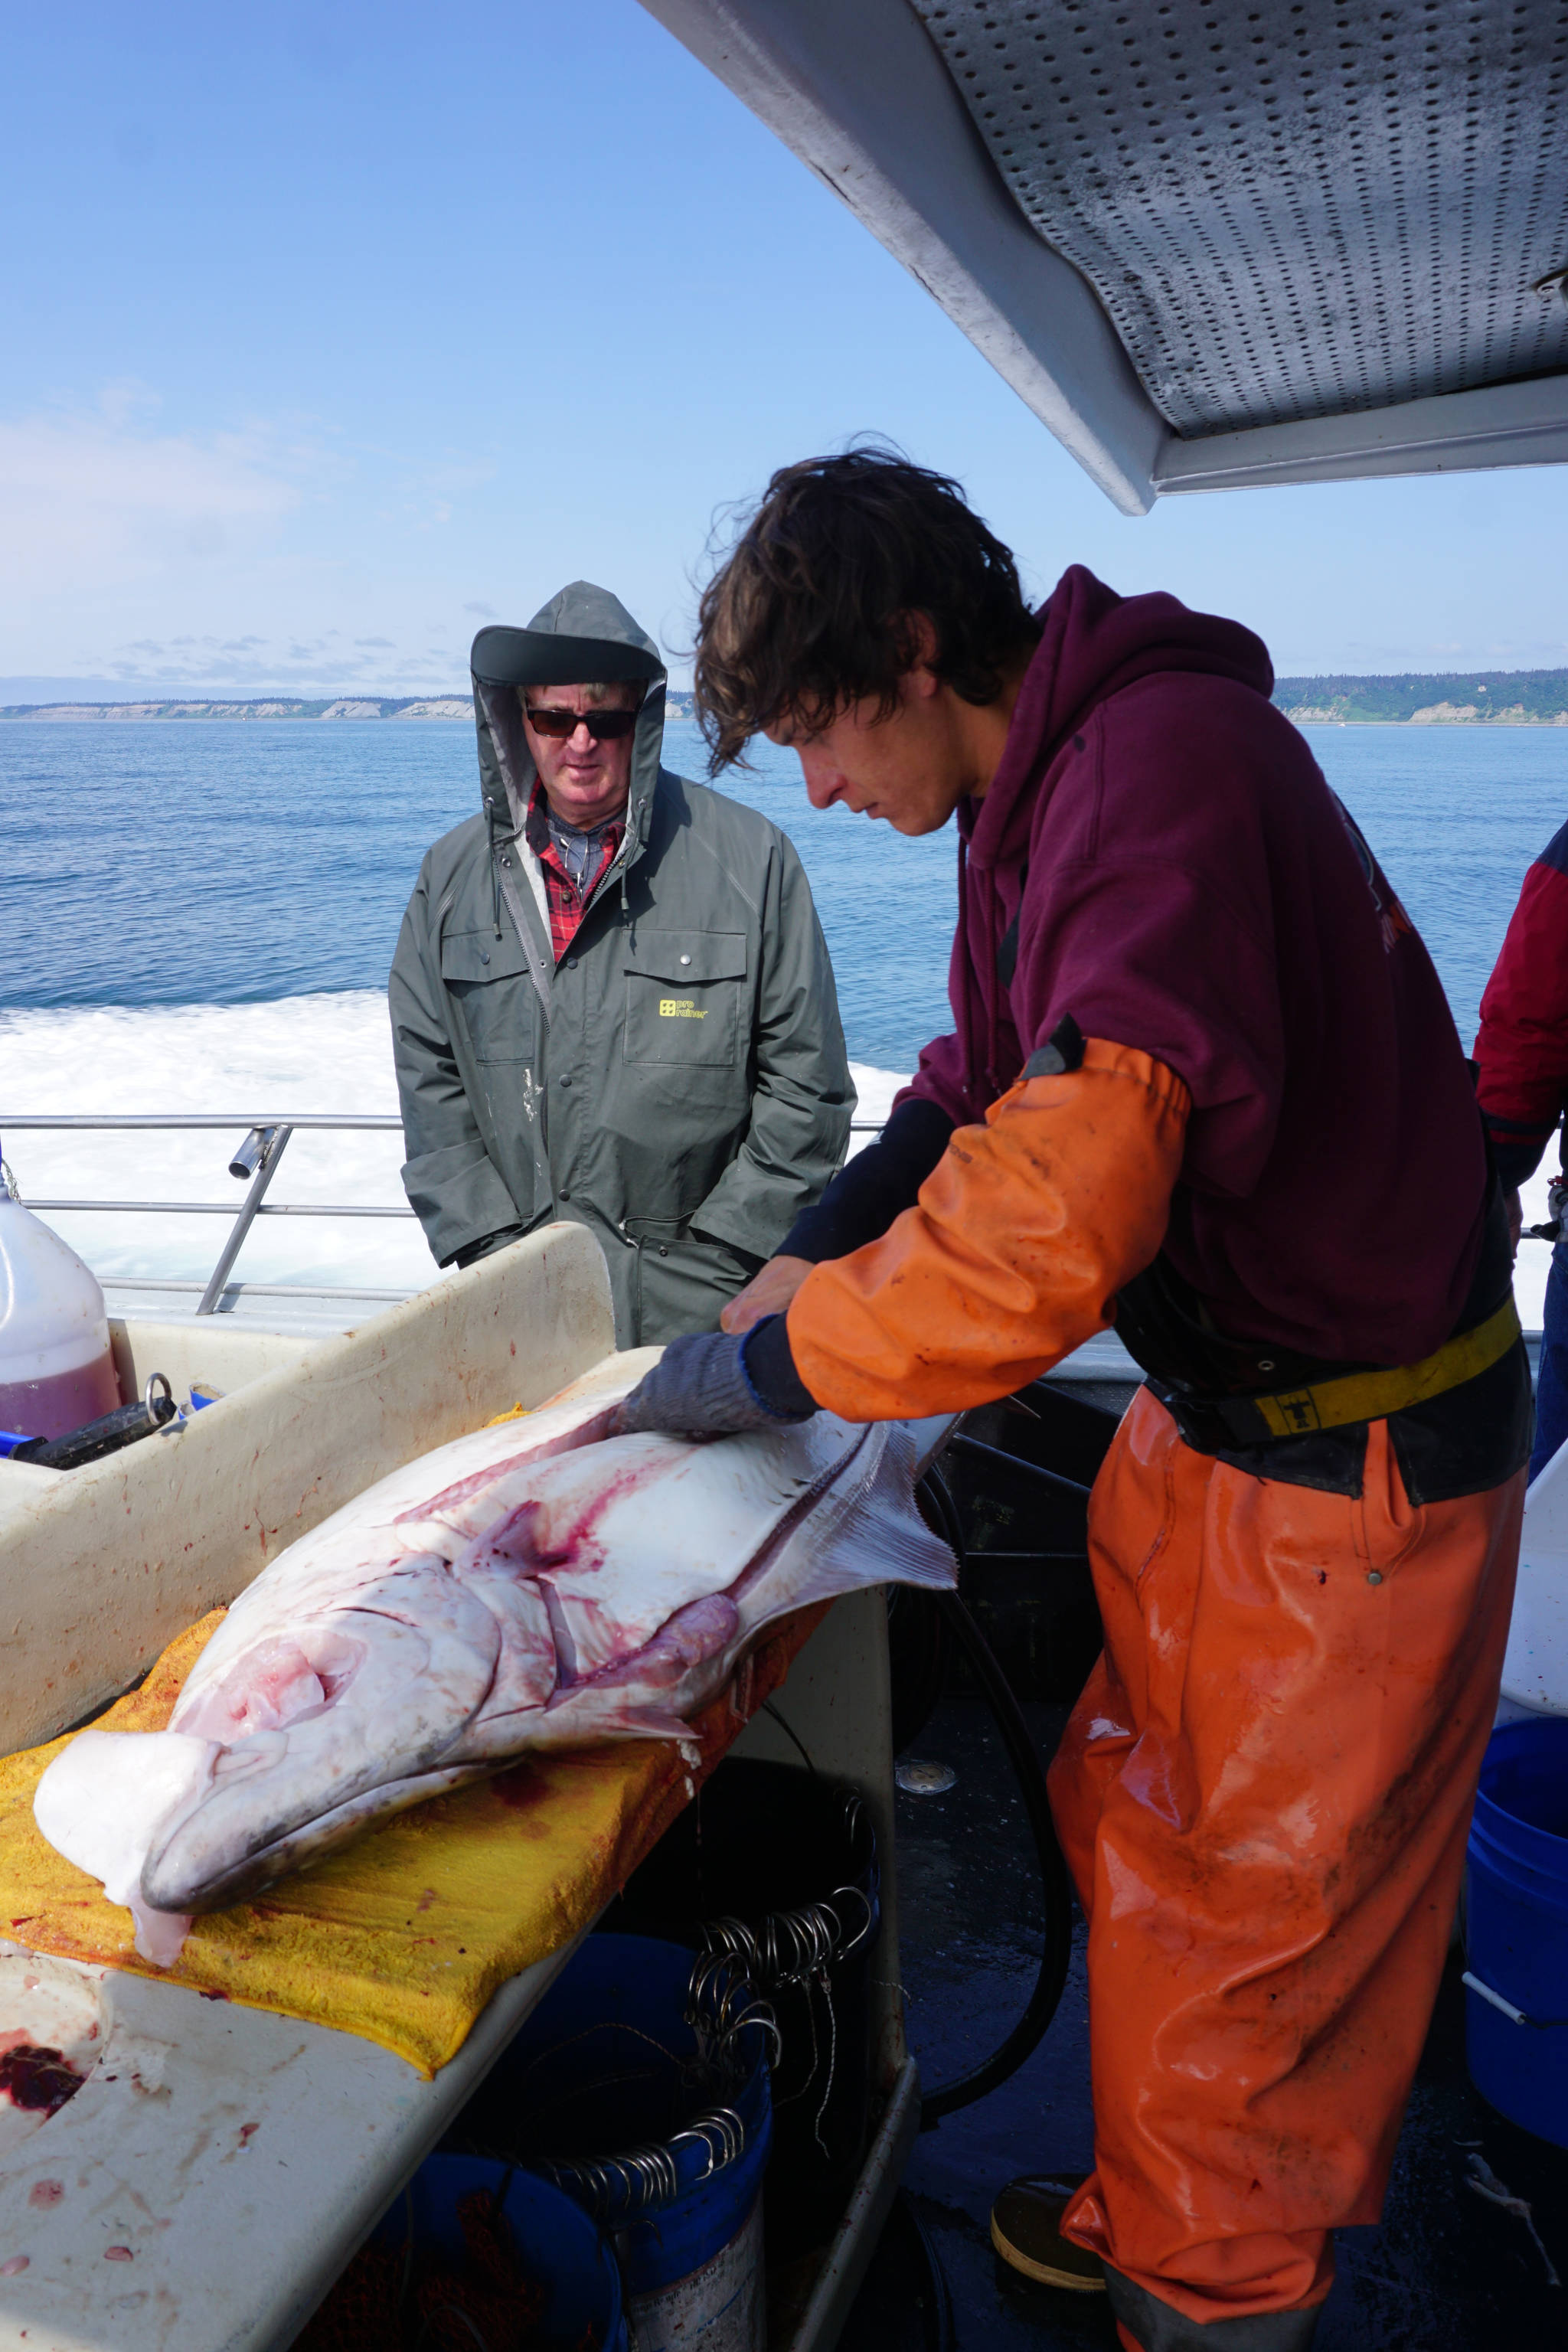 Casey McKinnon fillets a halibut as the Irish returns to Homer from a halibut fishing July 16, 2017 trip in Cook Inlet near Mount Iliamna, Alaska. According to federal regulations, halibut can be filleted on board into four bottom and top pieces as long as the skin is retained and the carcass for a size-restricted fish is kept. Photo by Michael Armstrong/Homer News